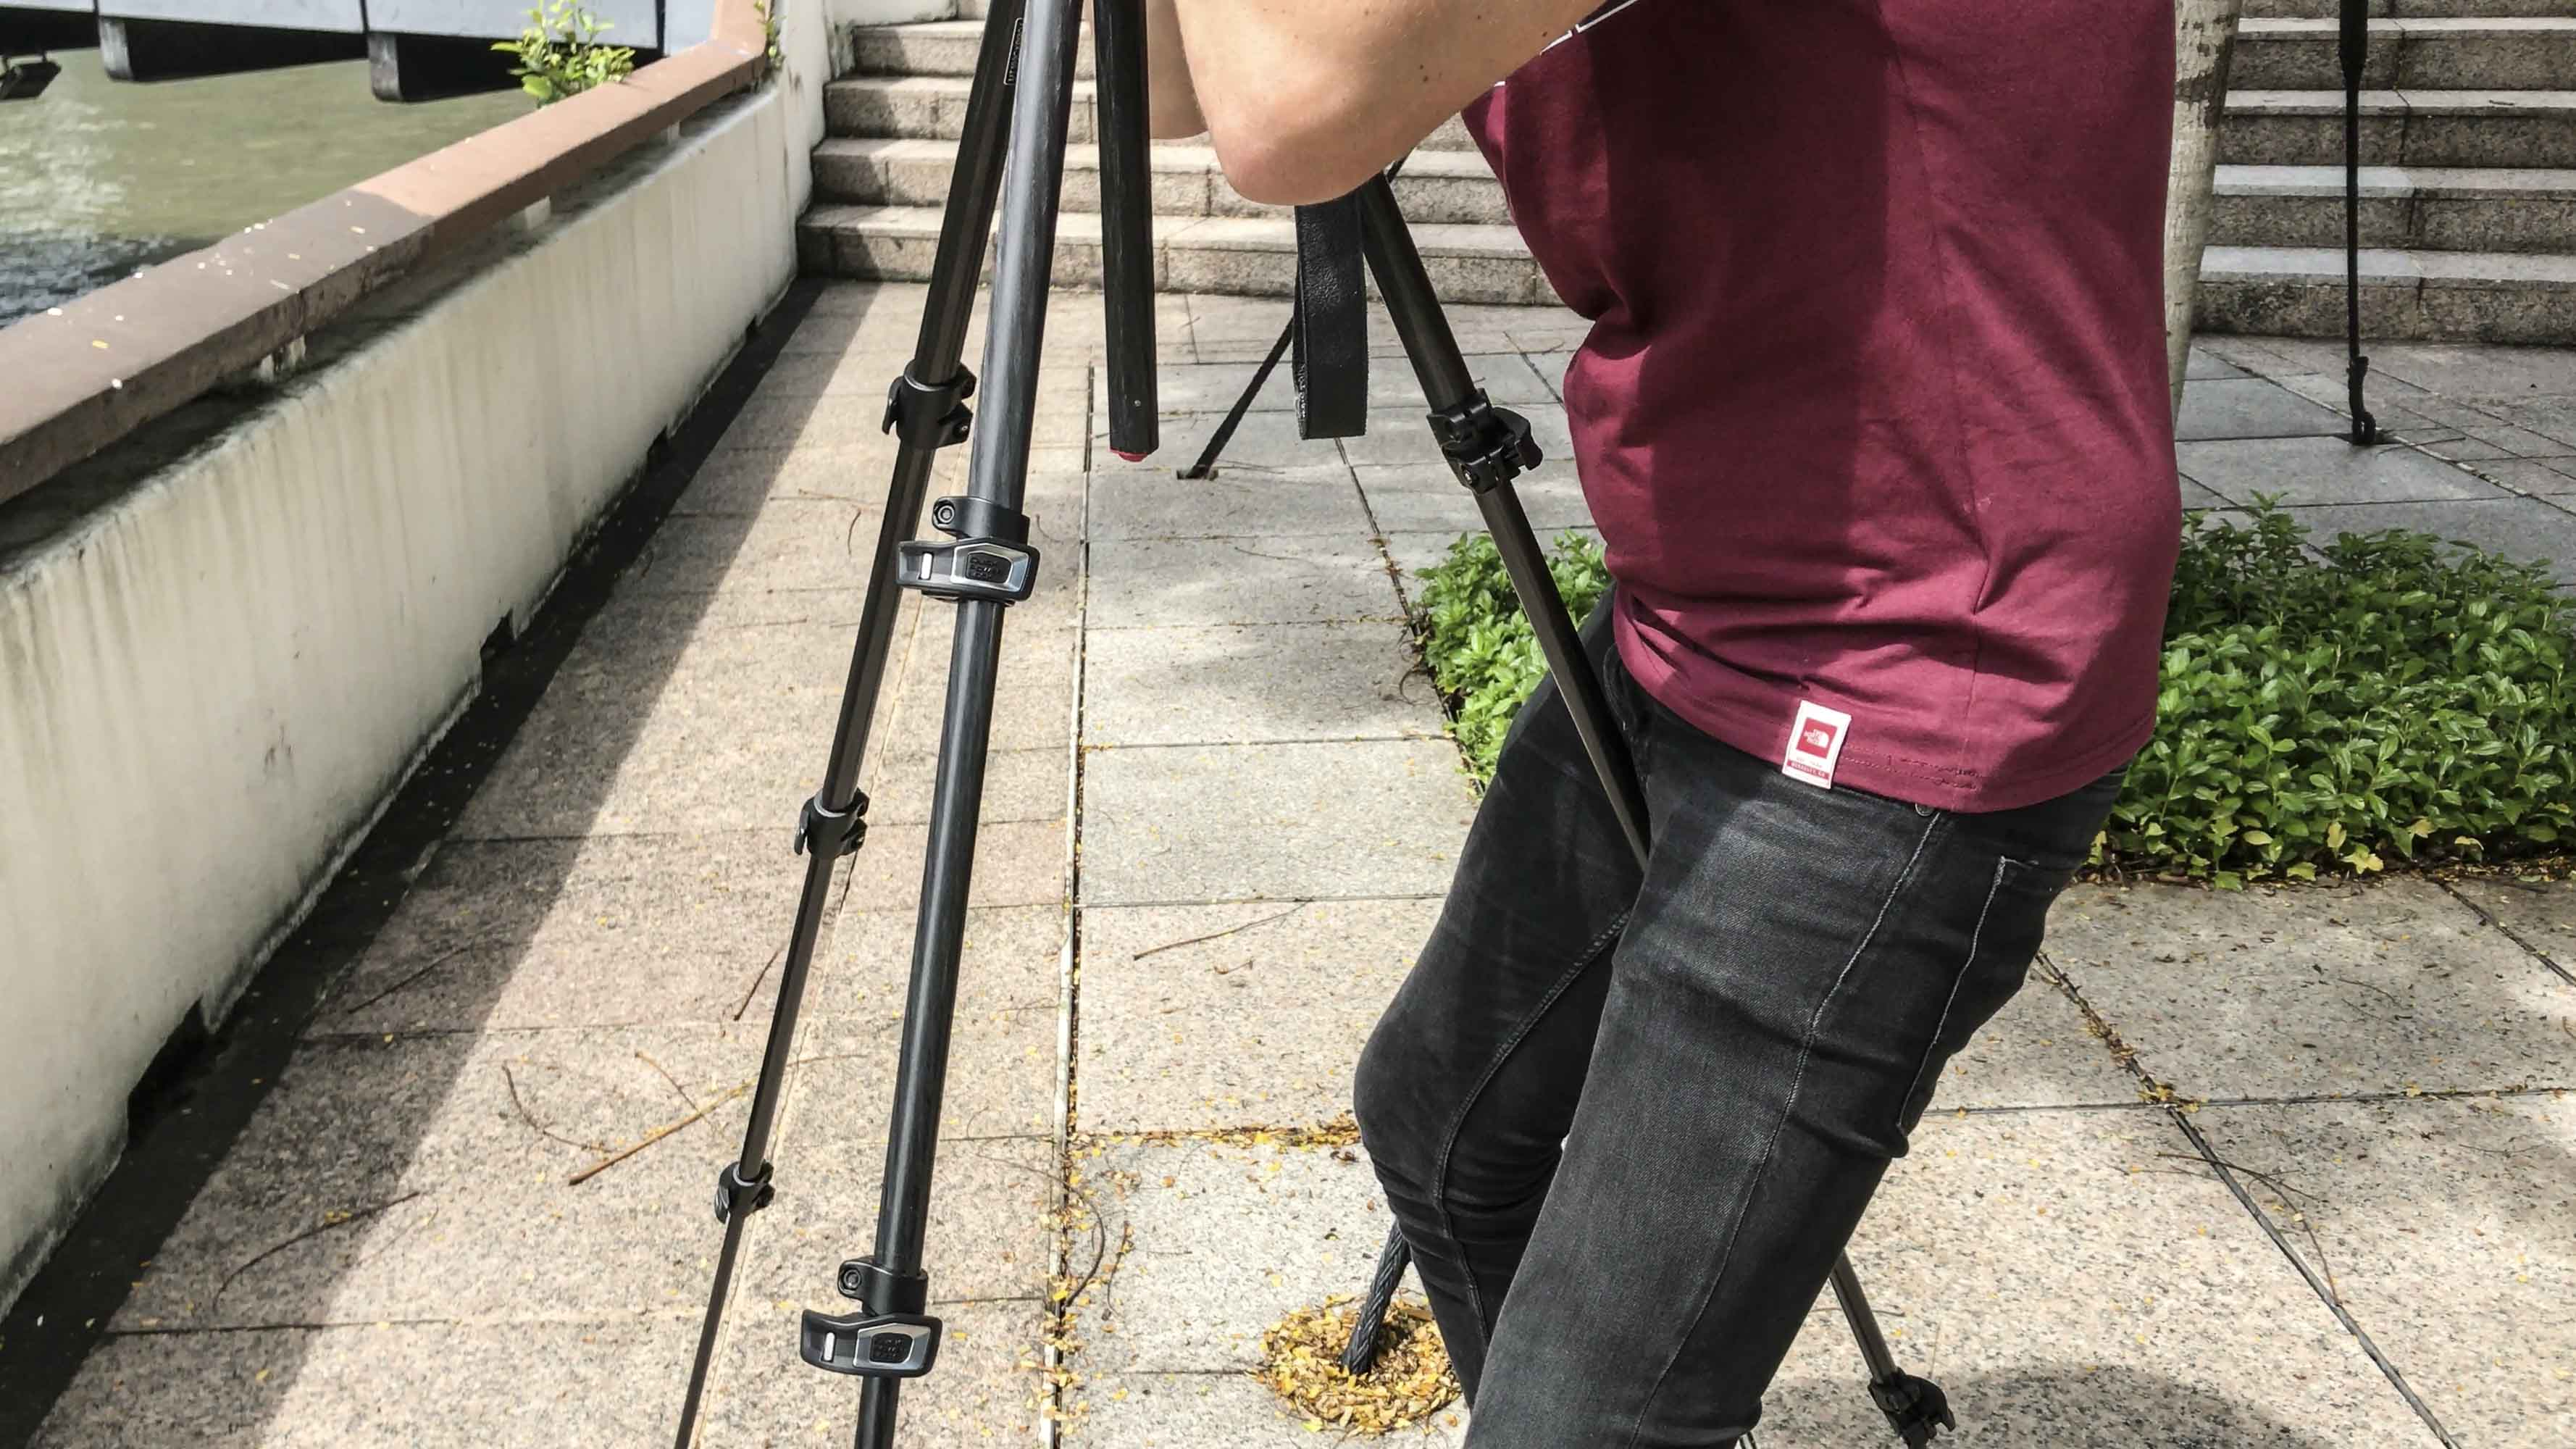 Manfrotto MT190CXPRO4 Carbon Fiber Tripod singapore cathay photo jose jeuland